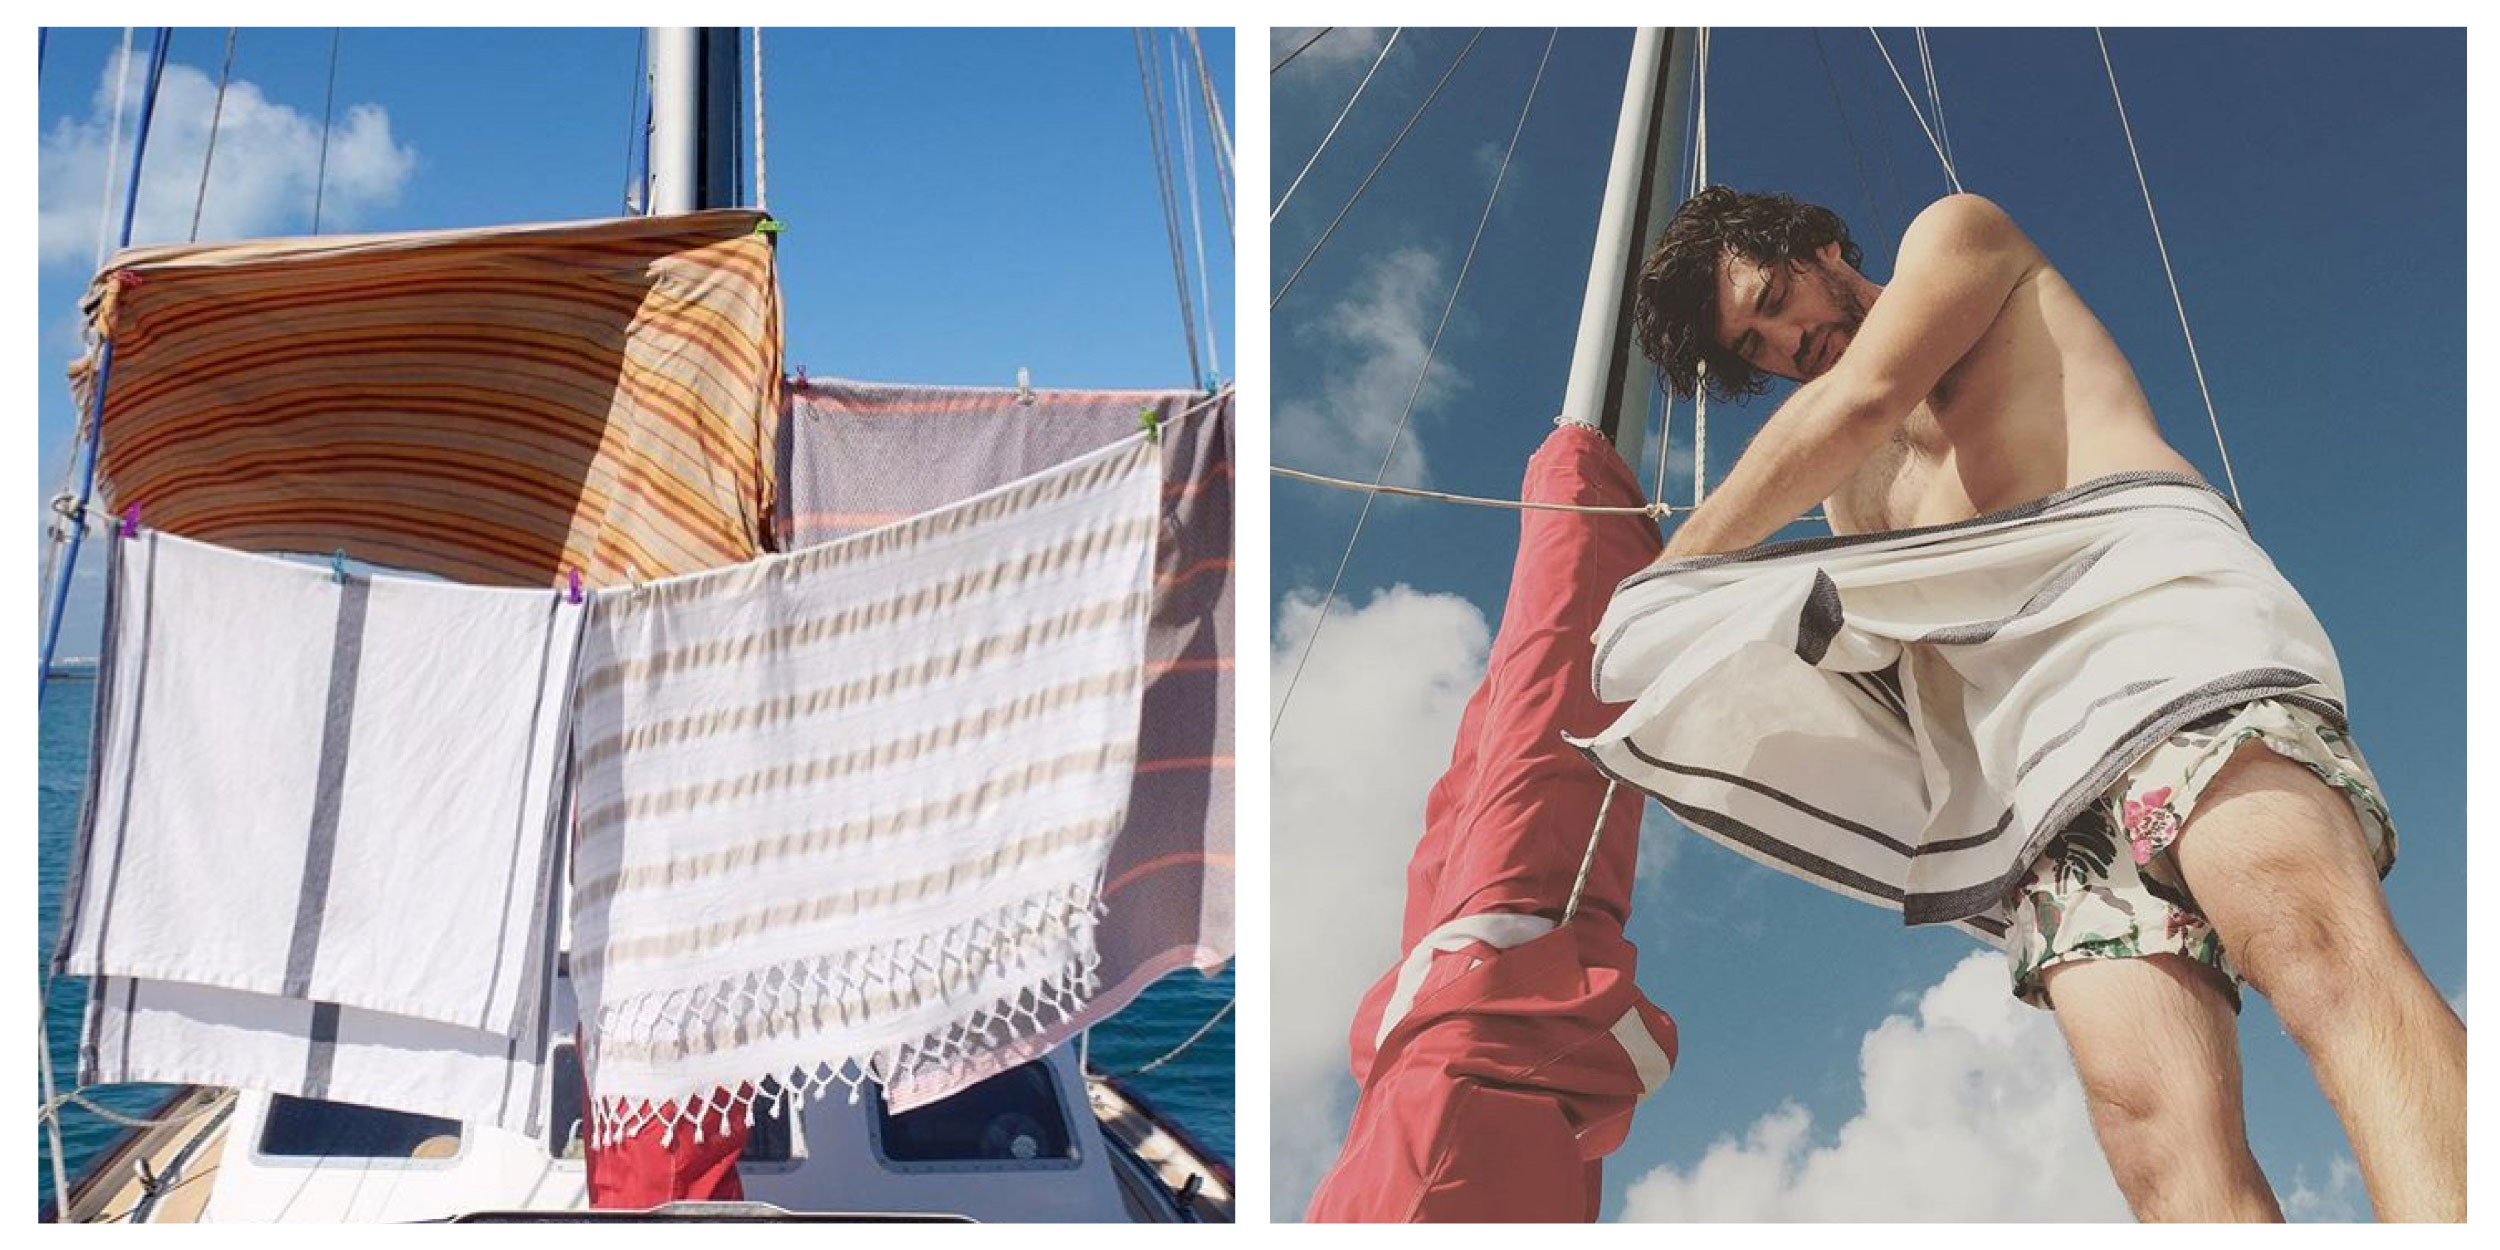 Mungo Towel Story. Compact lightweight towels for traveling